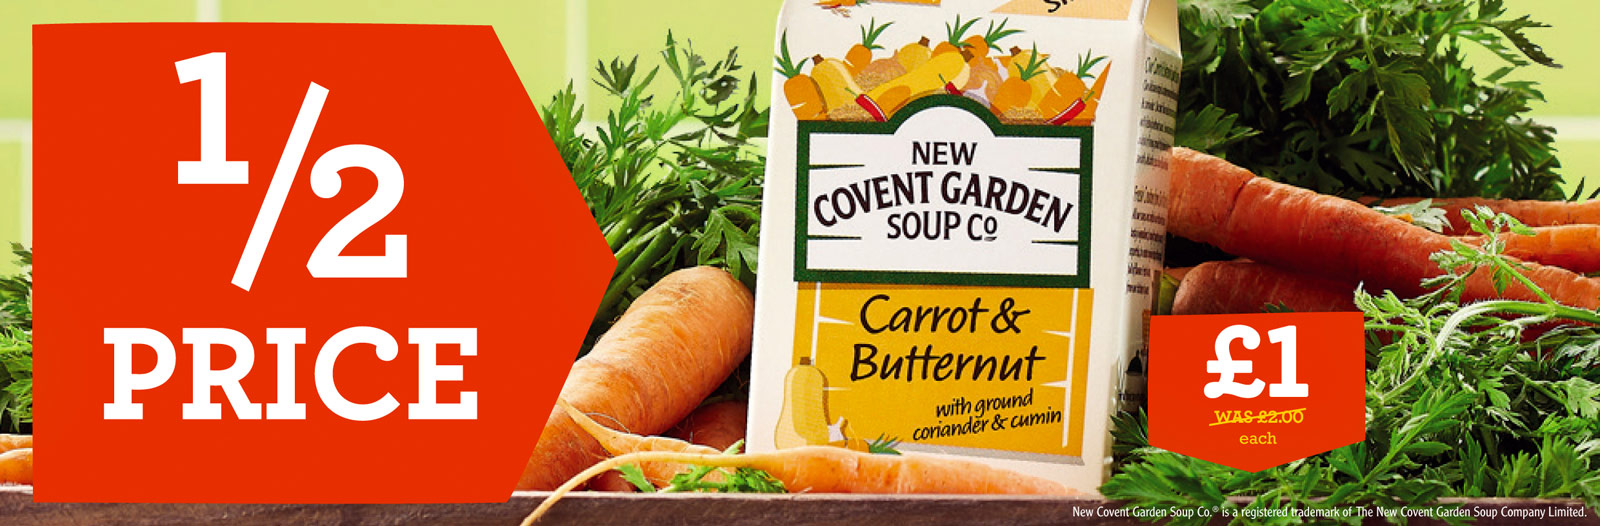 New Covent Garden Soup Co promo advert